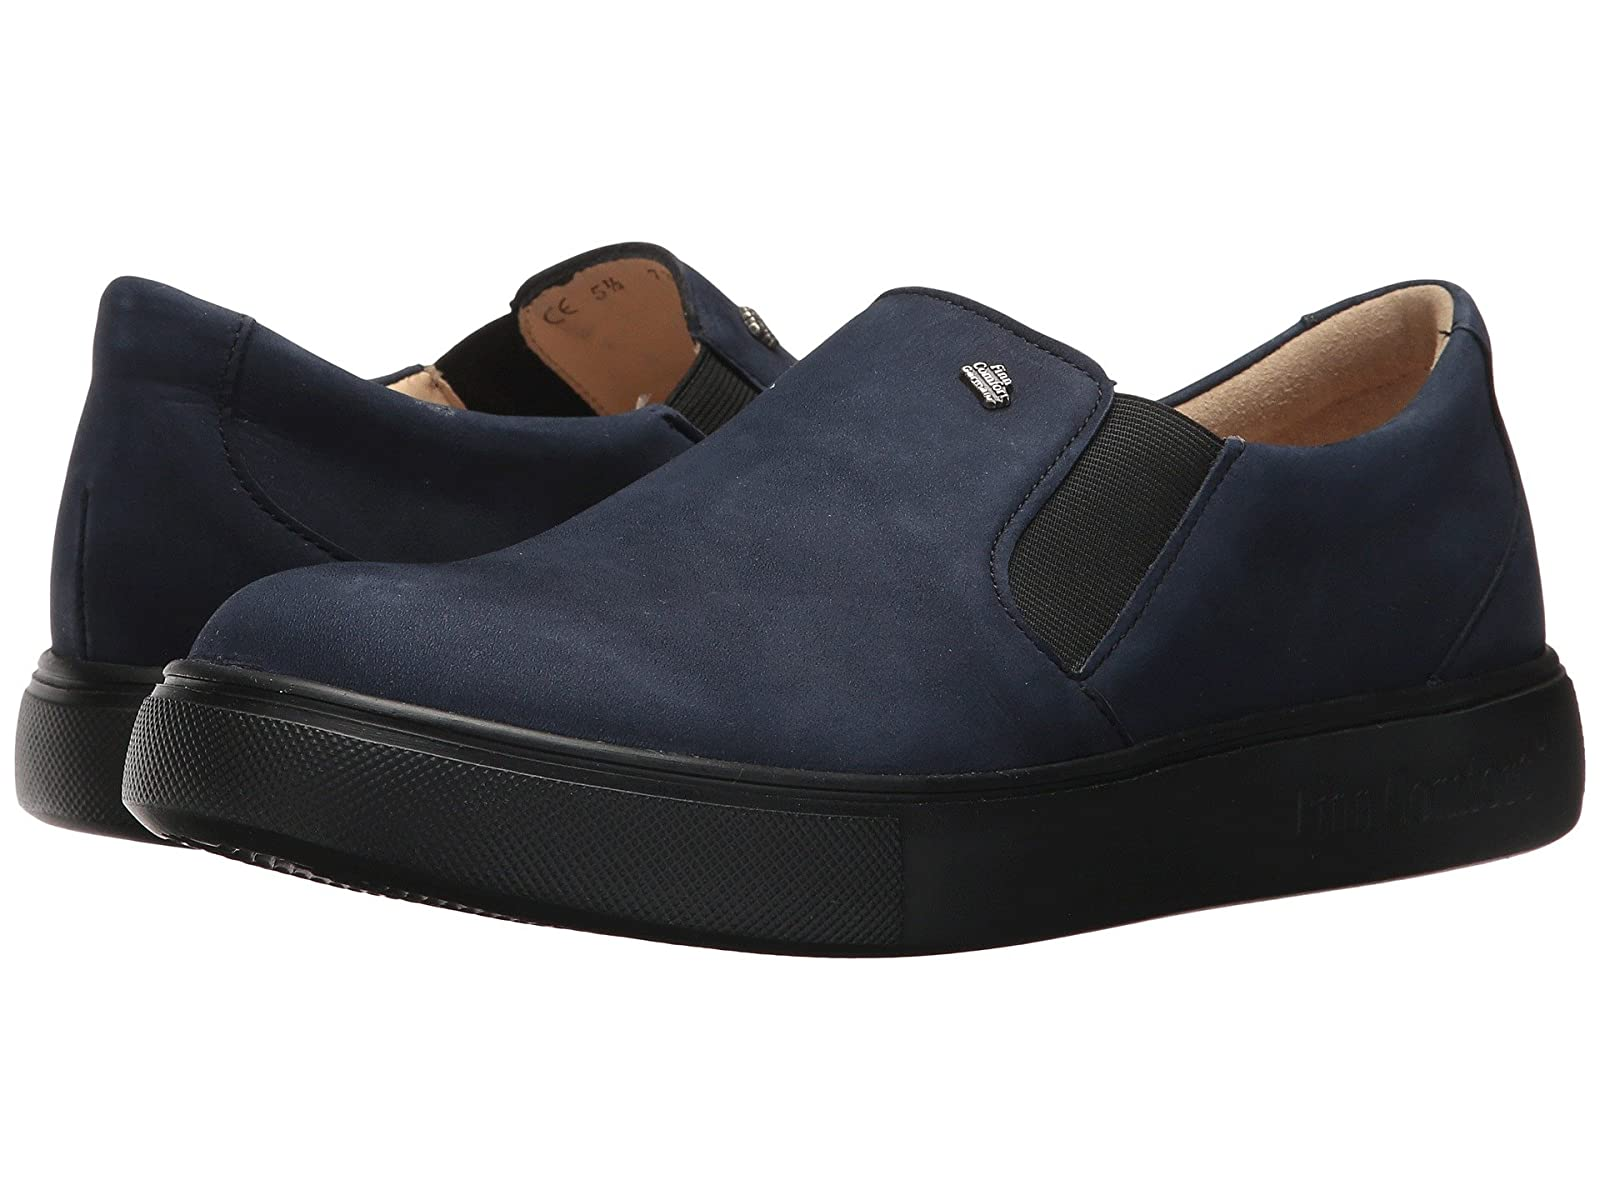 Finn Comfort ClaytonCheap and distinctive eye-catching shoes